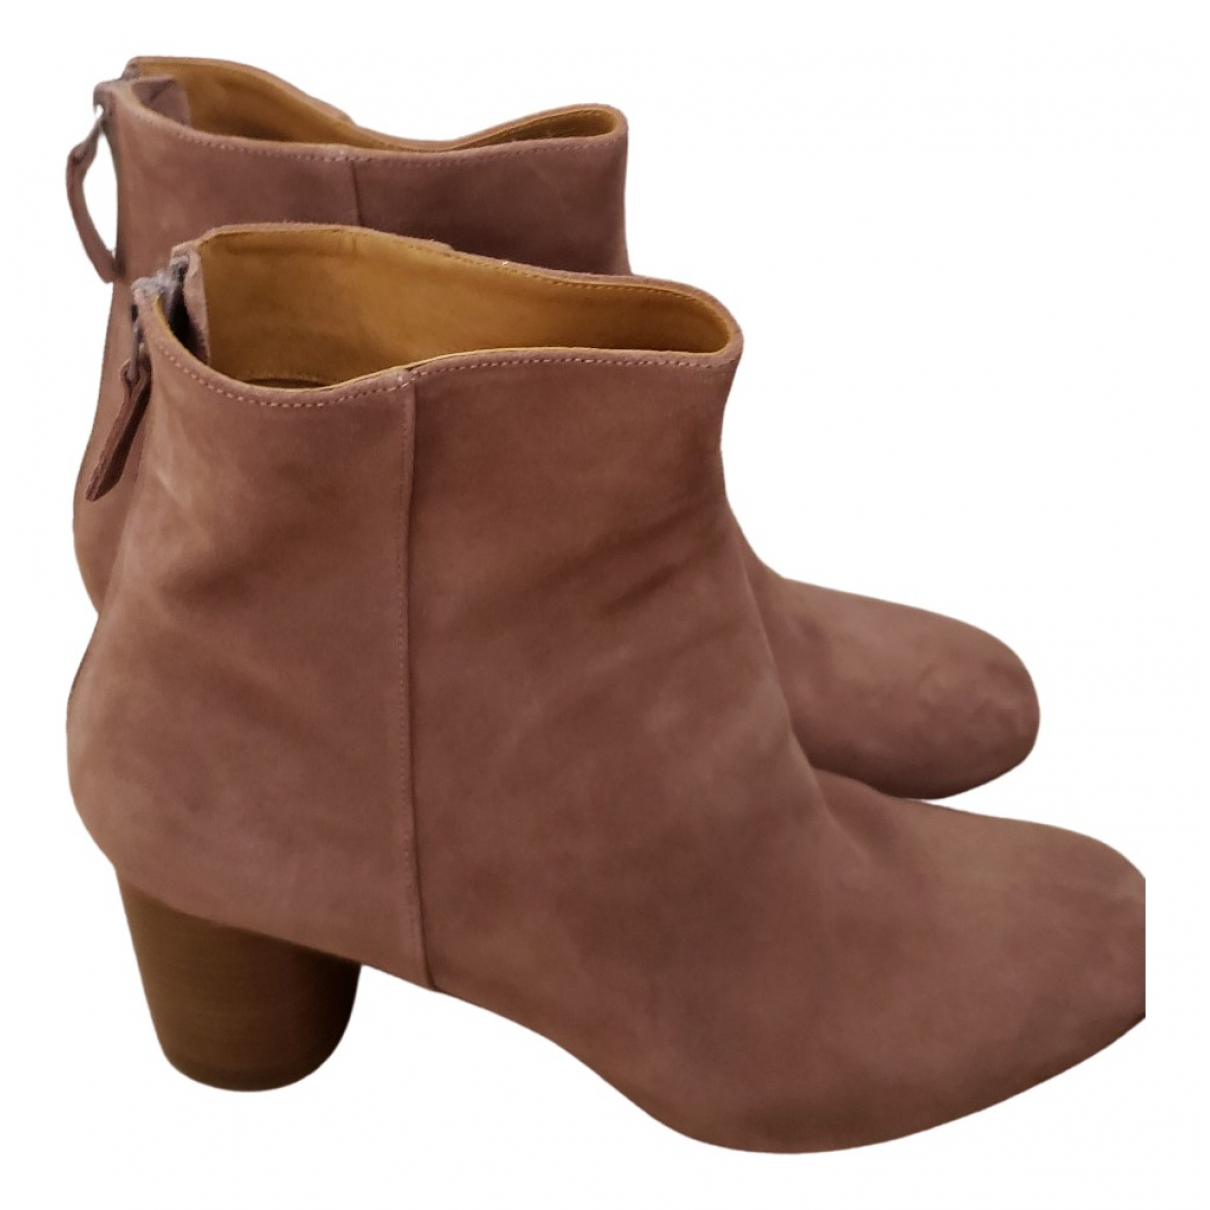 Sandro Fall Winter 2019 Camel Leather Boots for Women 40 EU